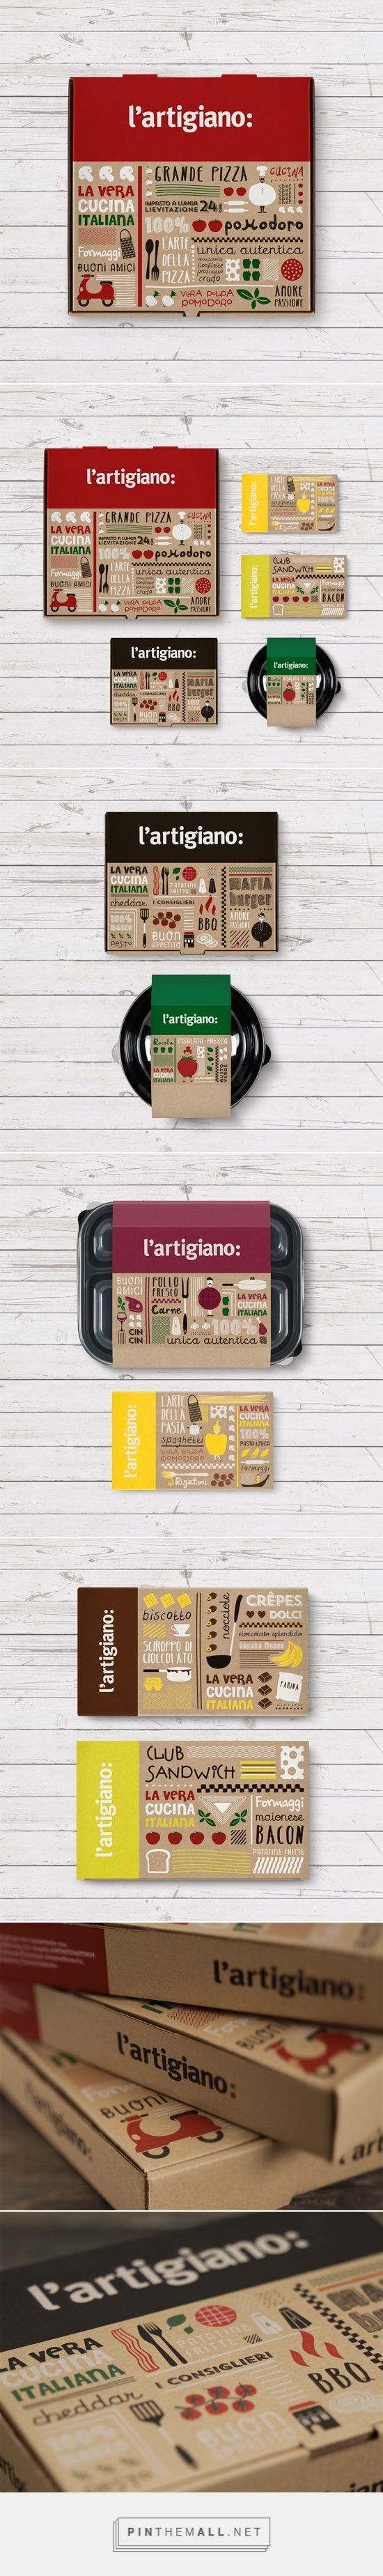 L'Artigiano is a chain of Italian food delivery restaurants.